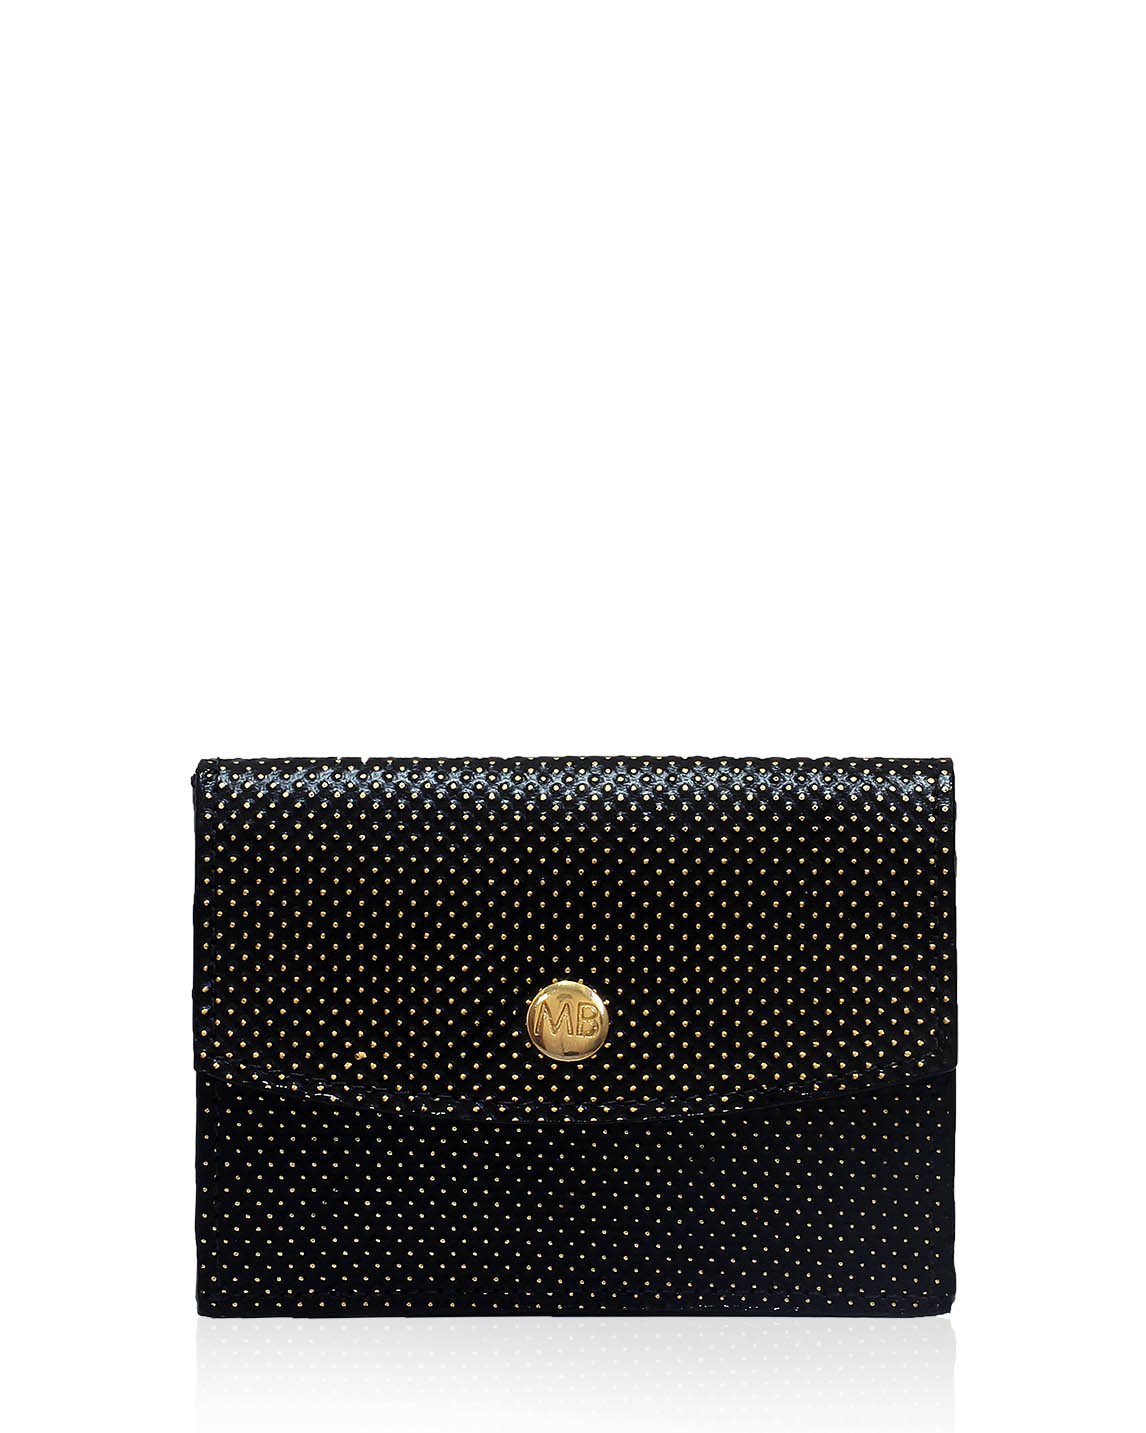 Monedero M-14 Color Negro